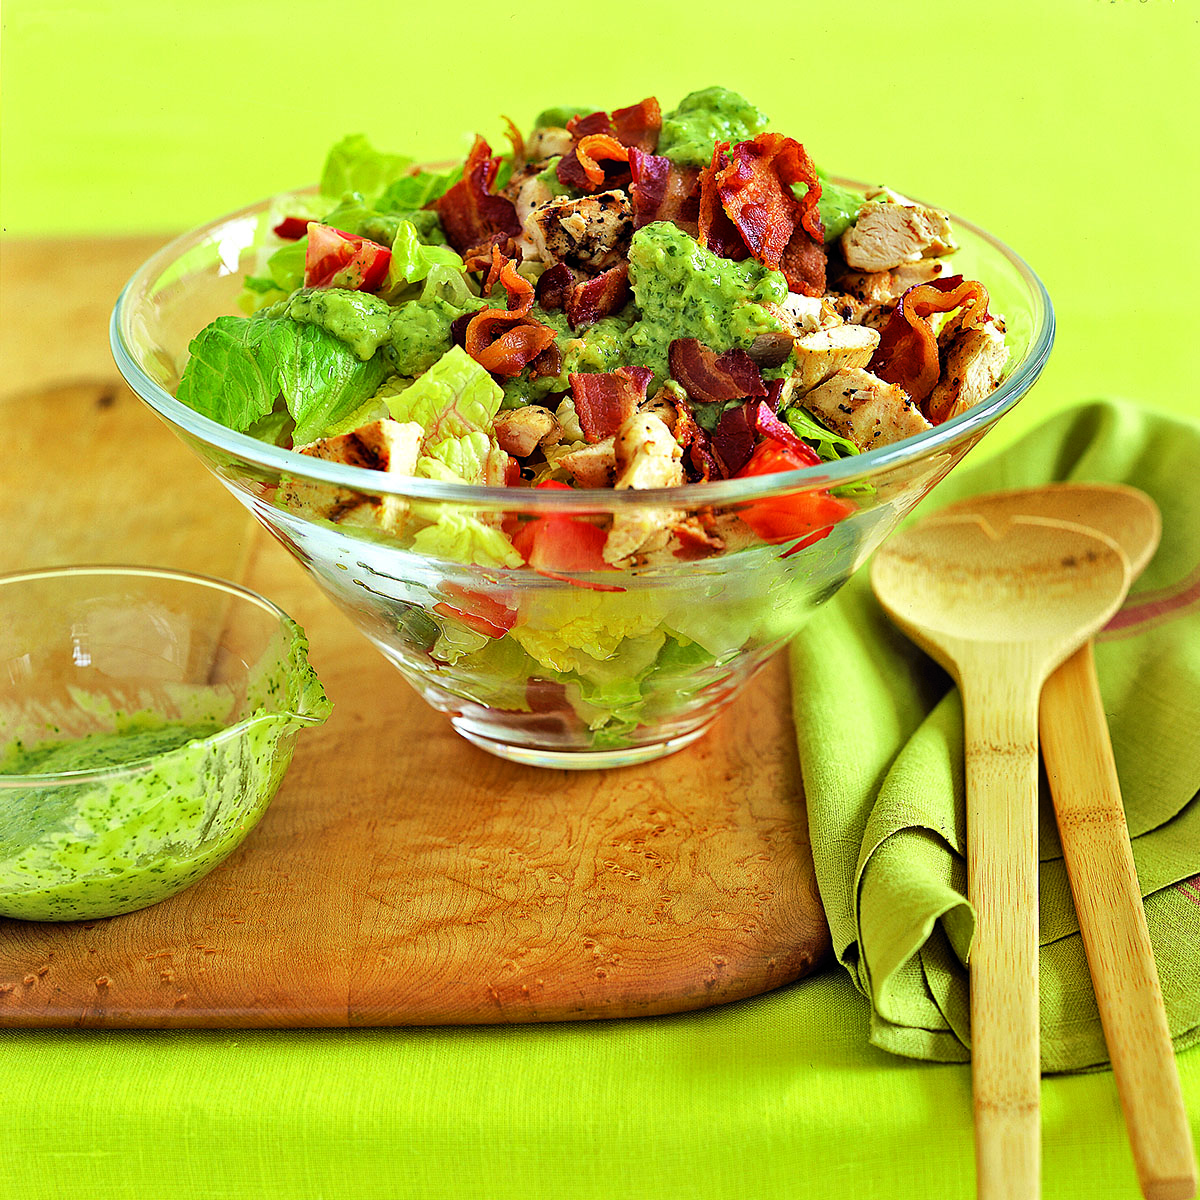 Grilled Chicken Club Salad with Guacamole Dressing